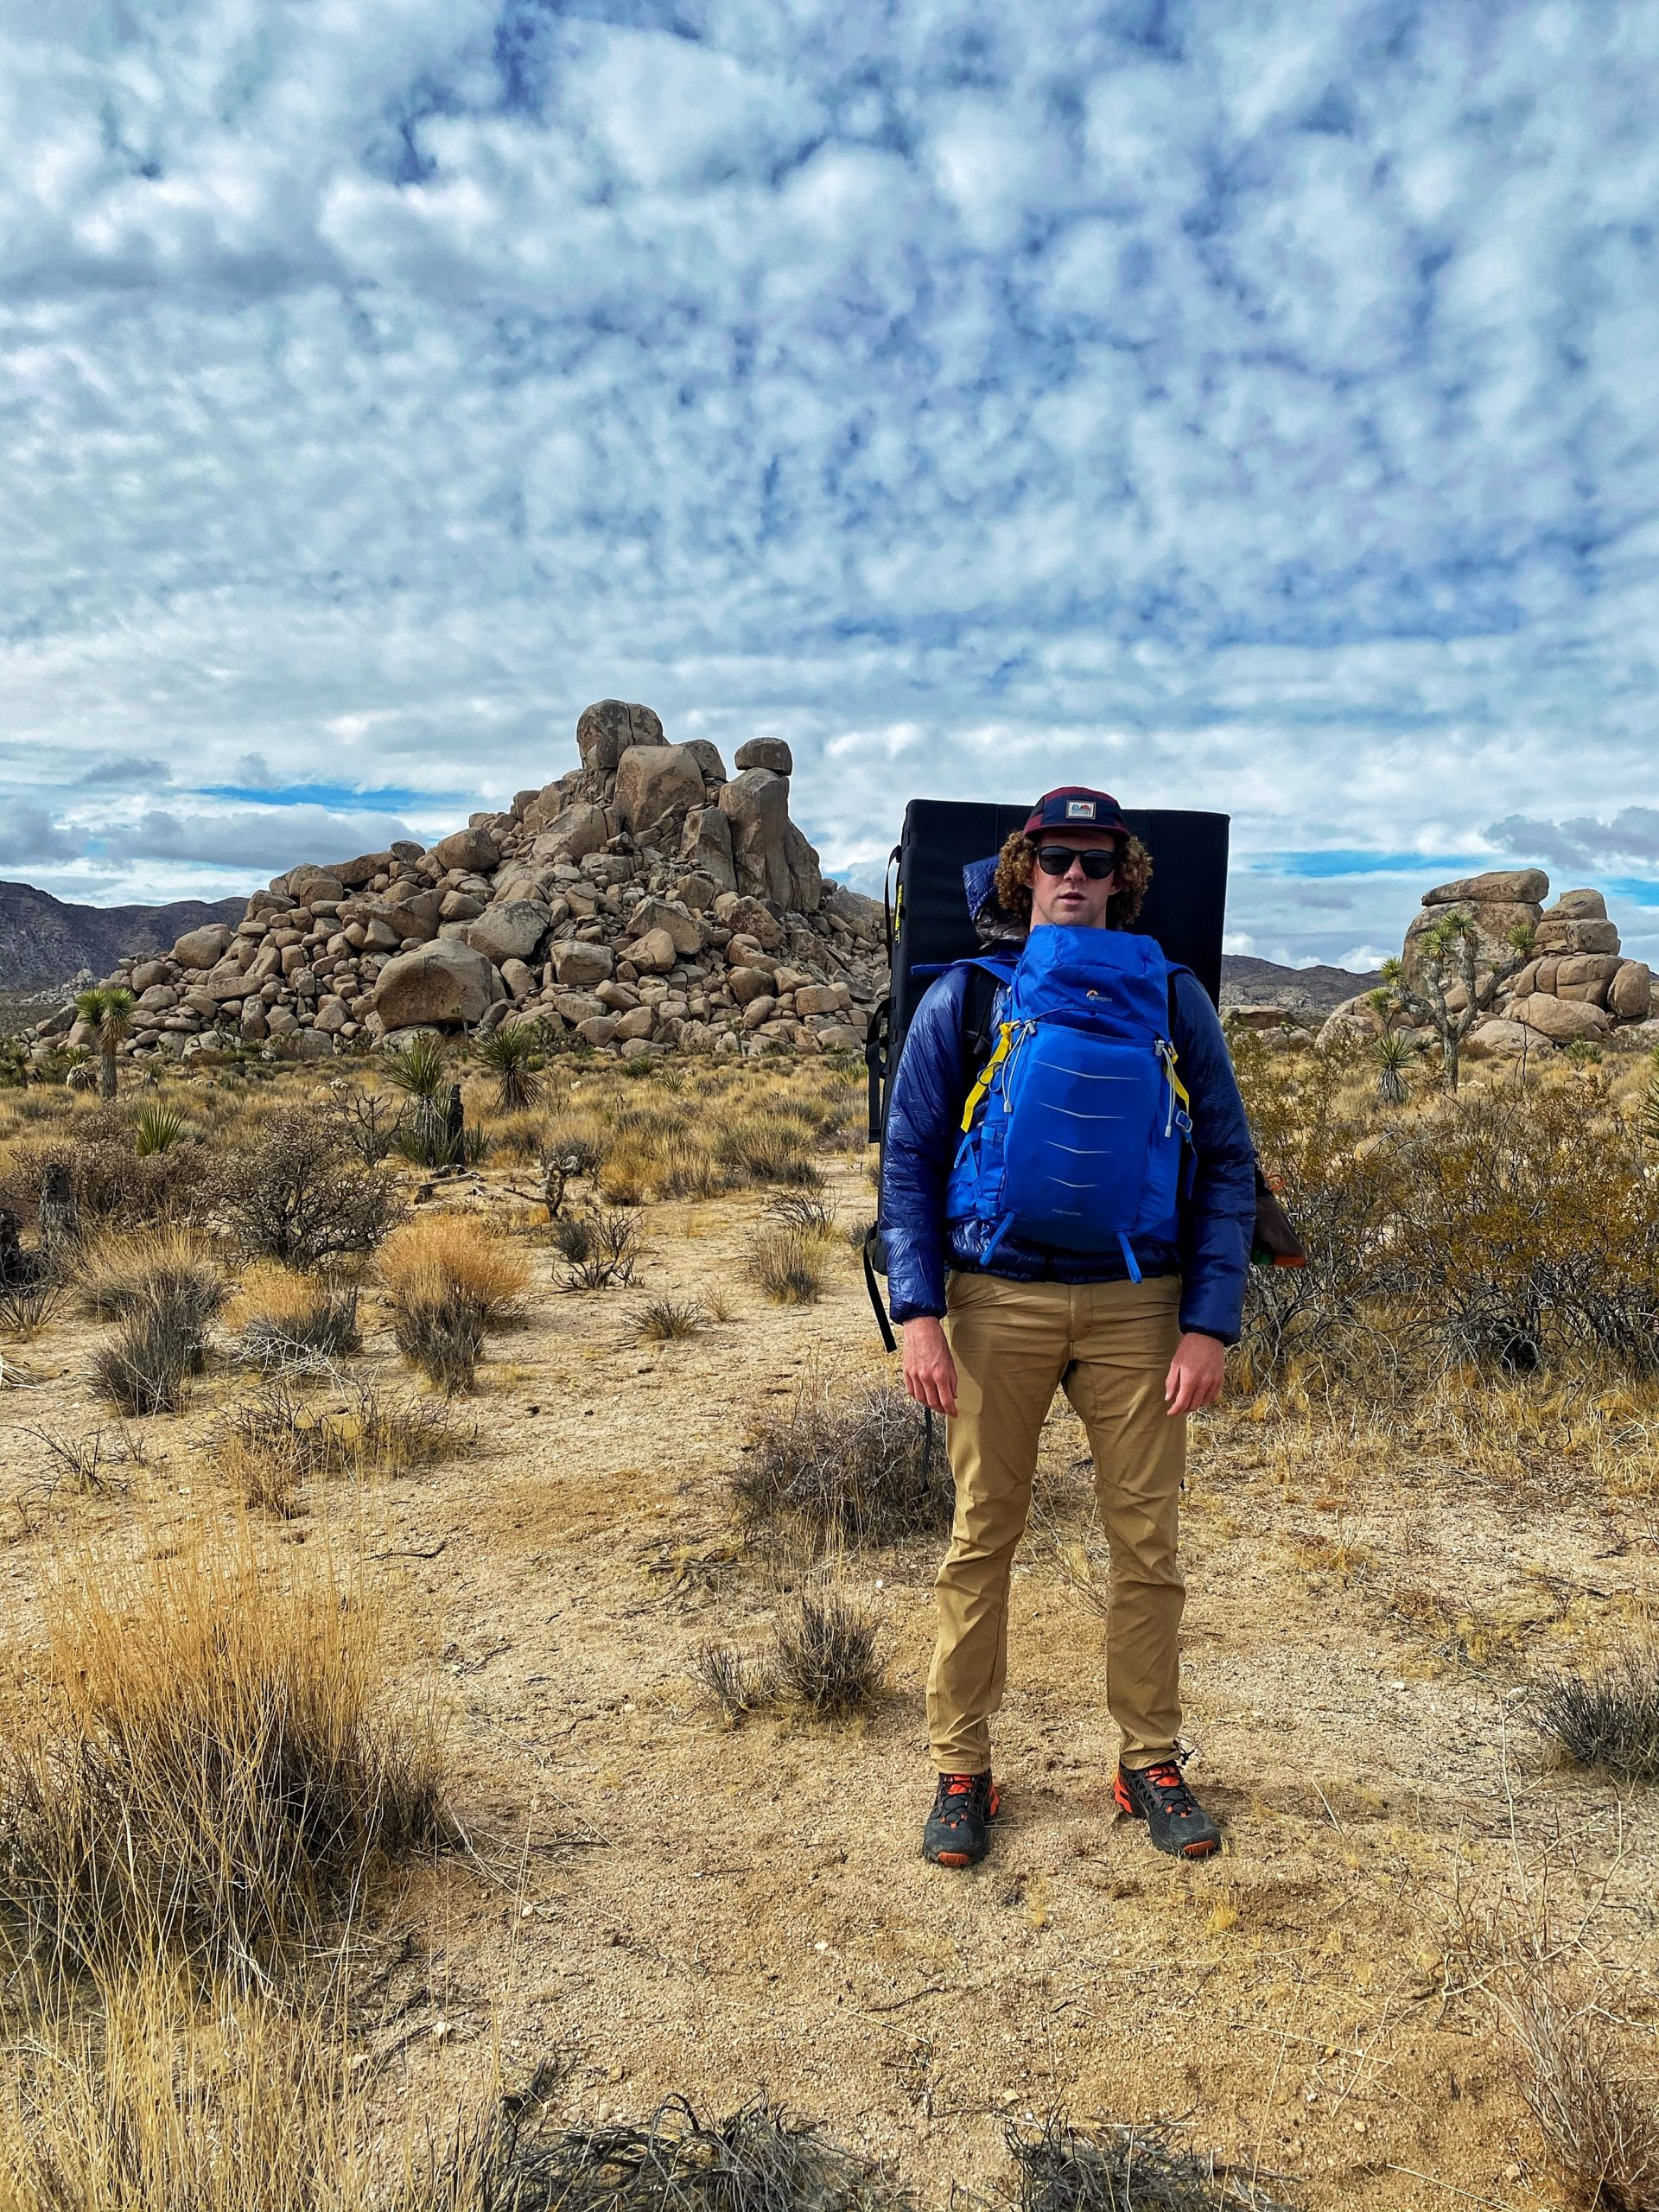 Standing with a crash pad on my back and boulder formations in the background.